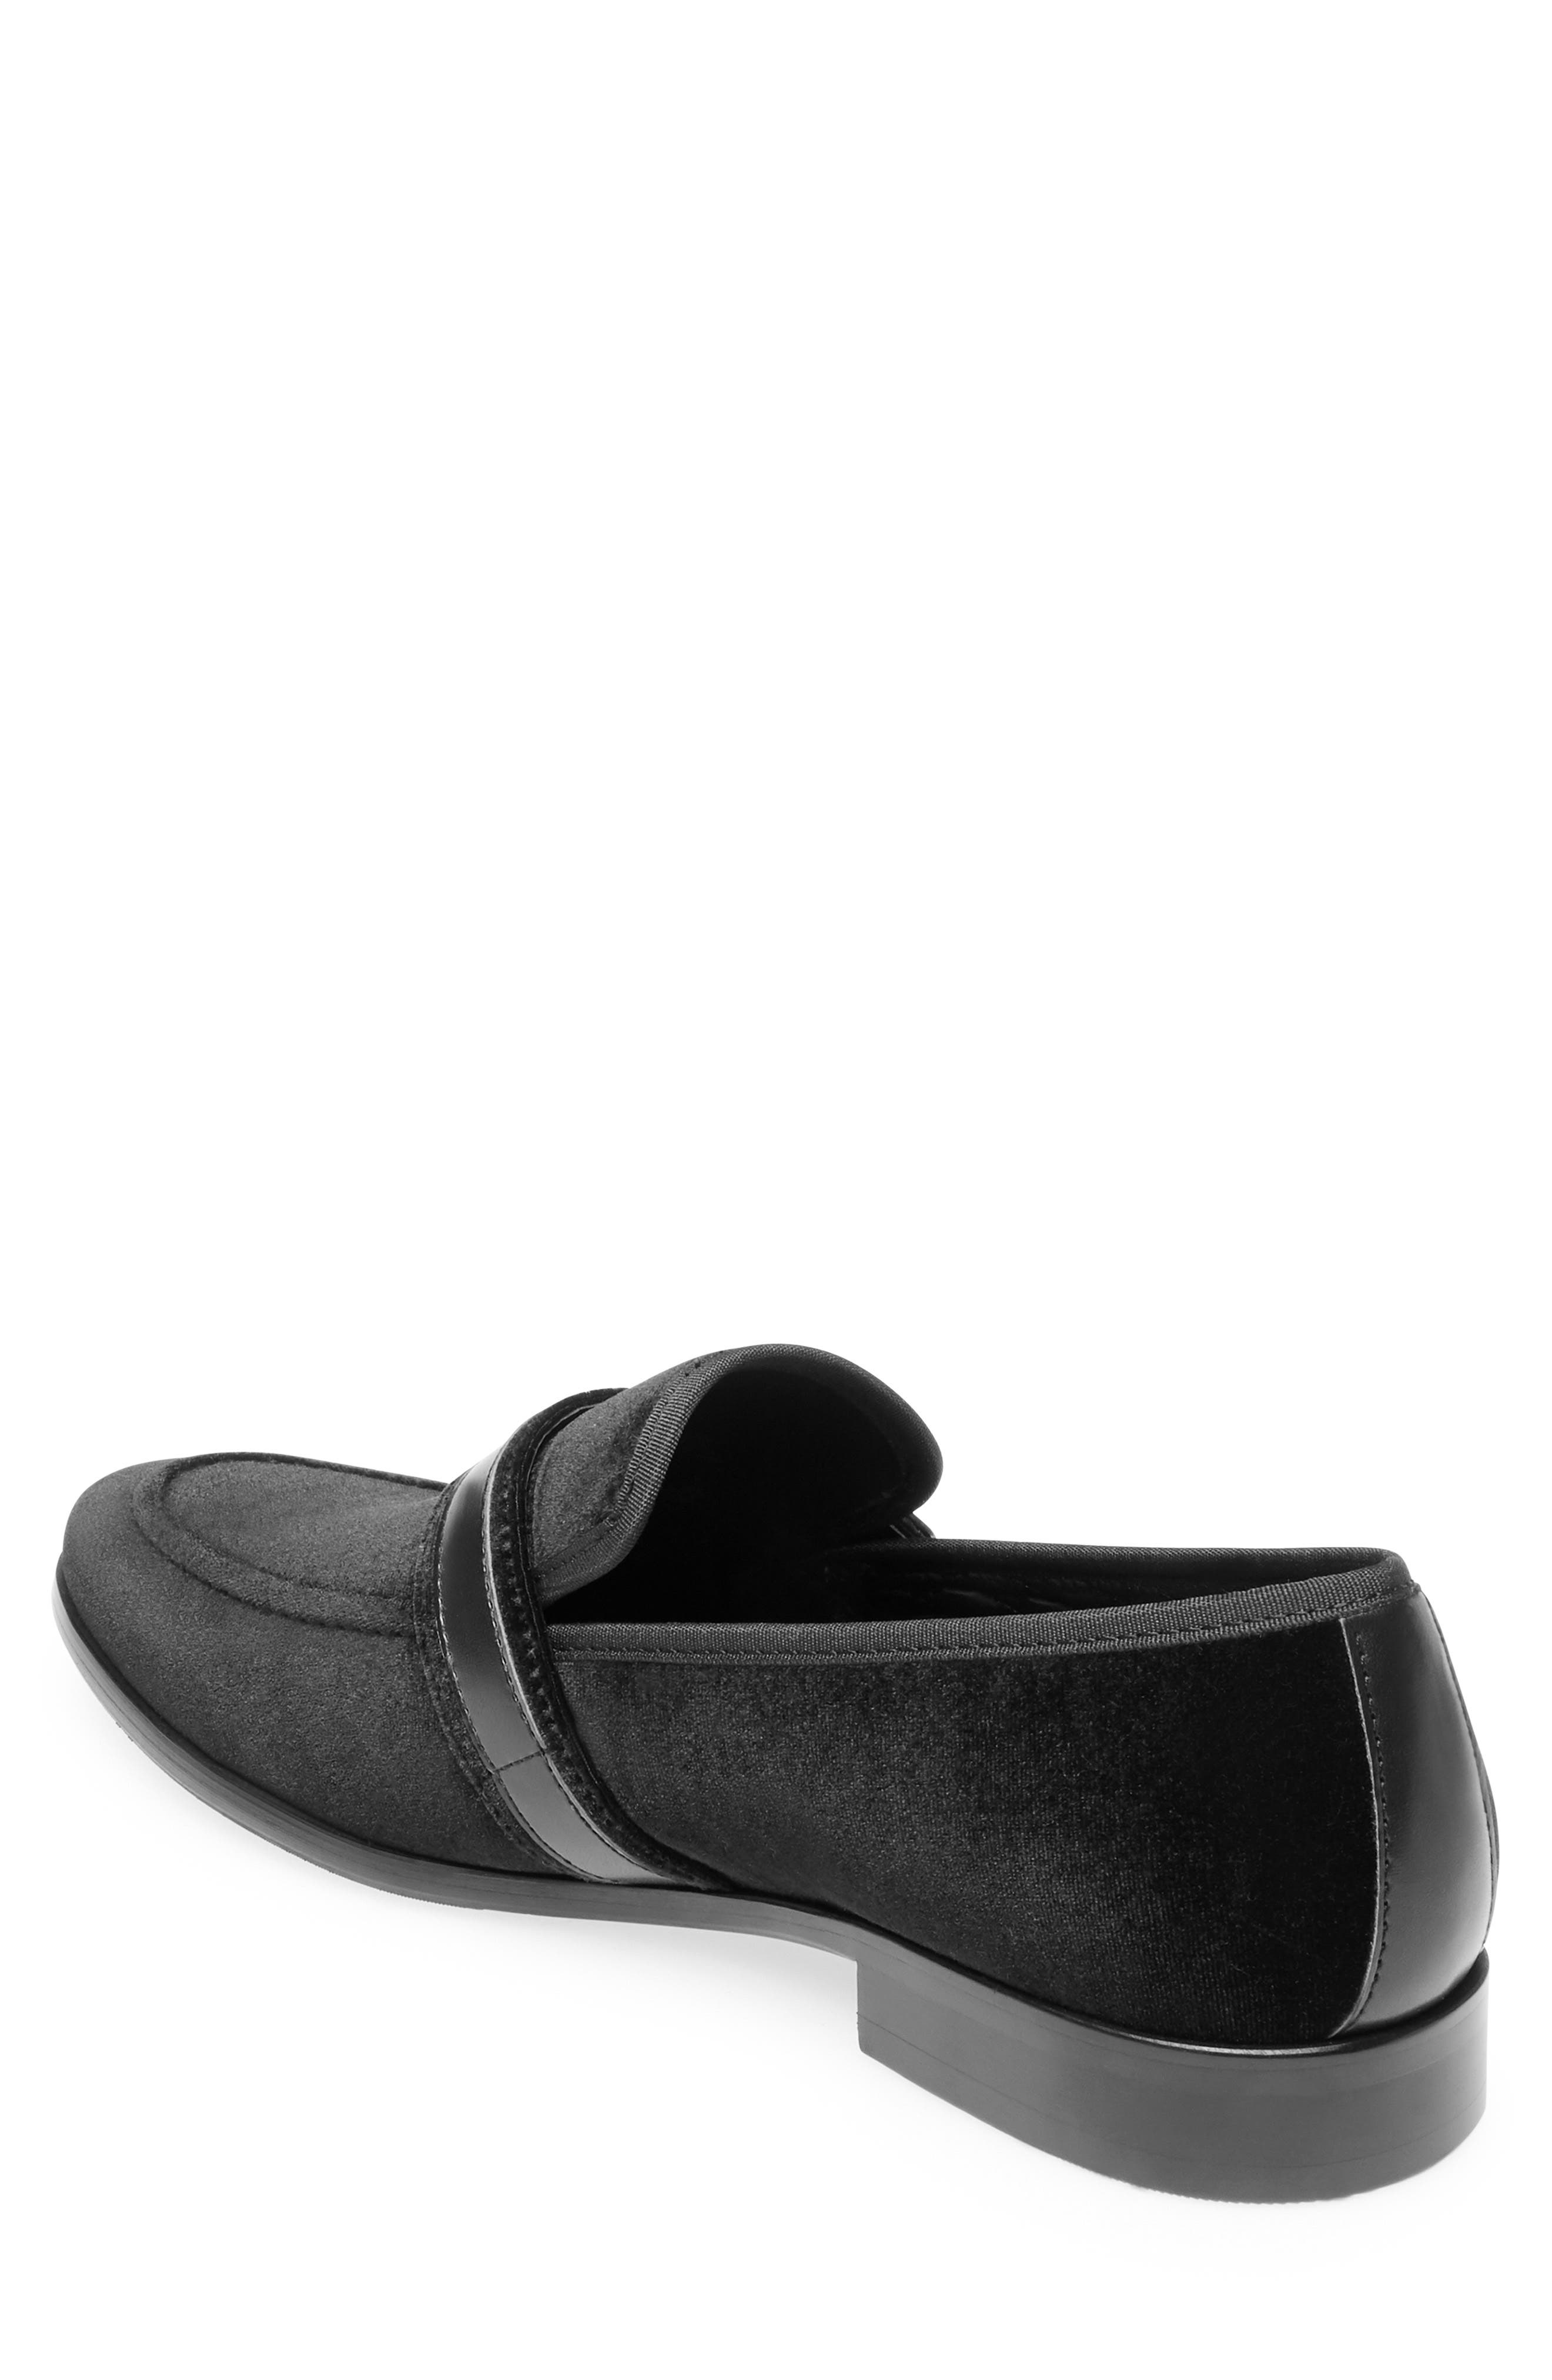 Macklin Bit Loafer,                             Alternate thumbnail 2, color,                             BLACK FABRIC